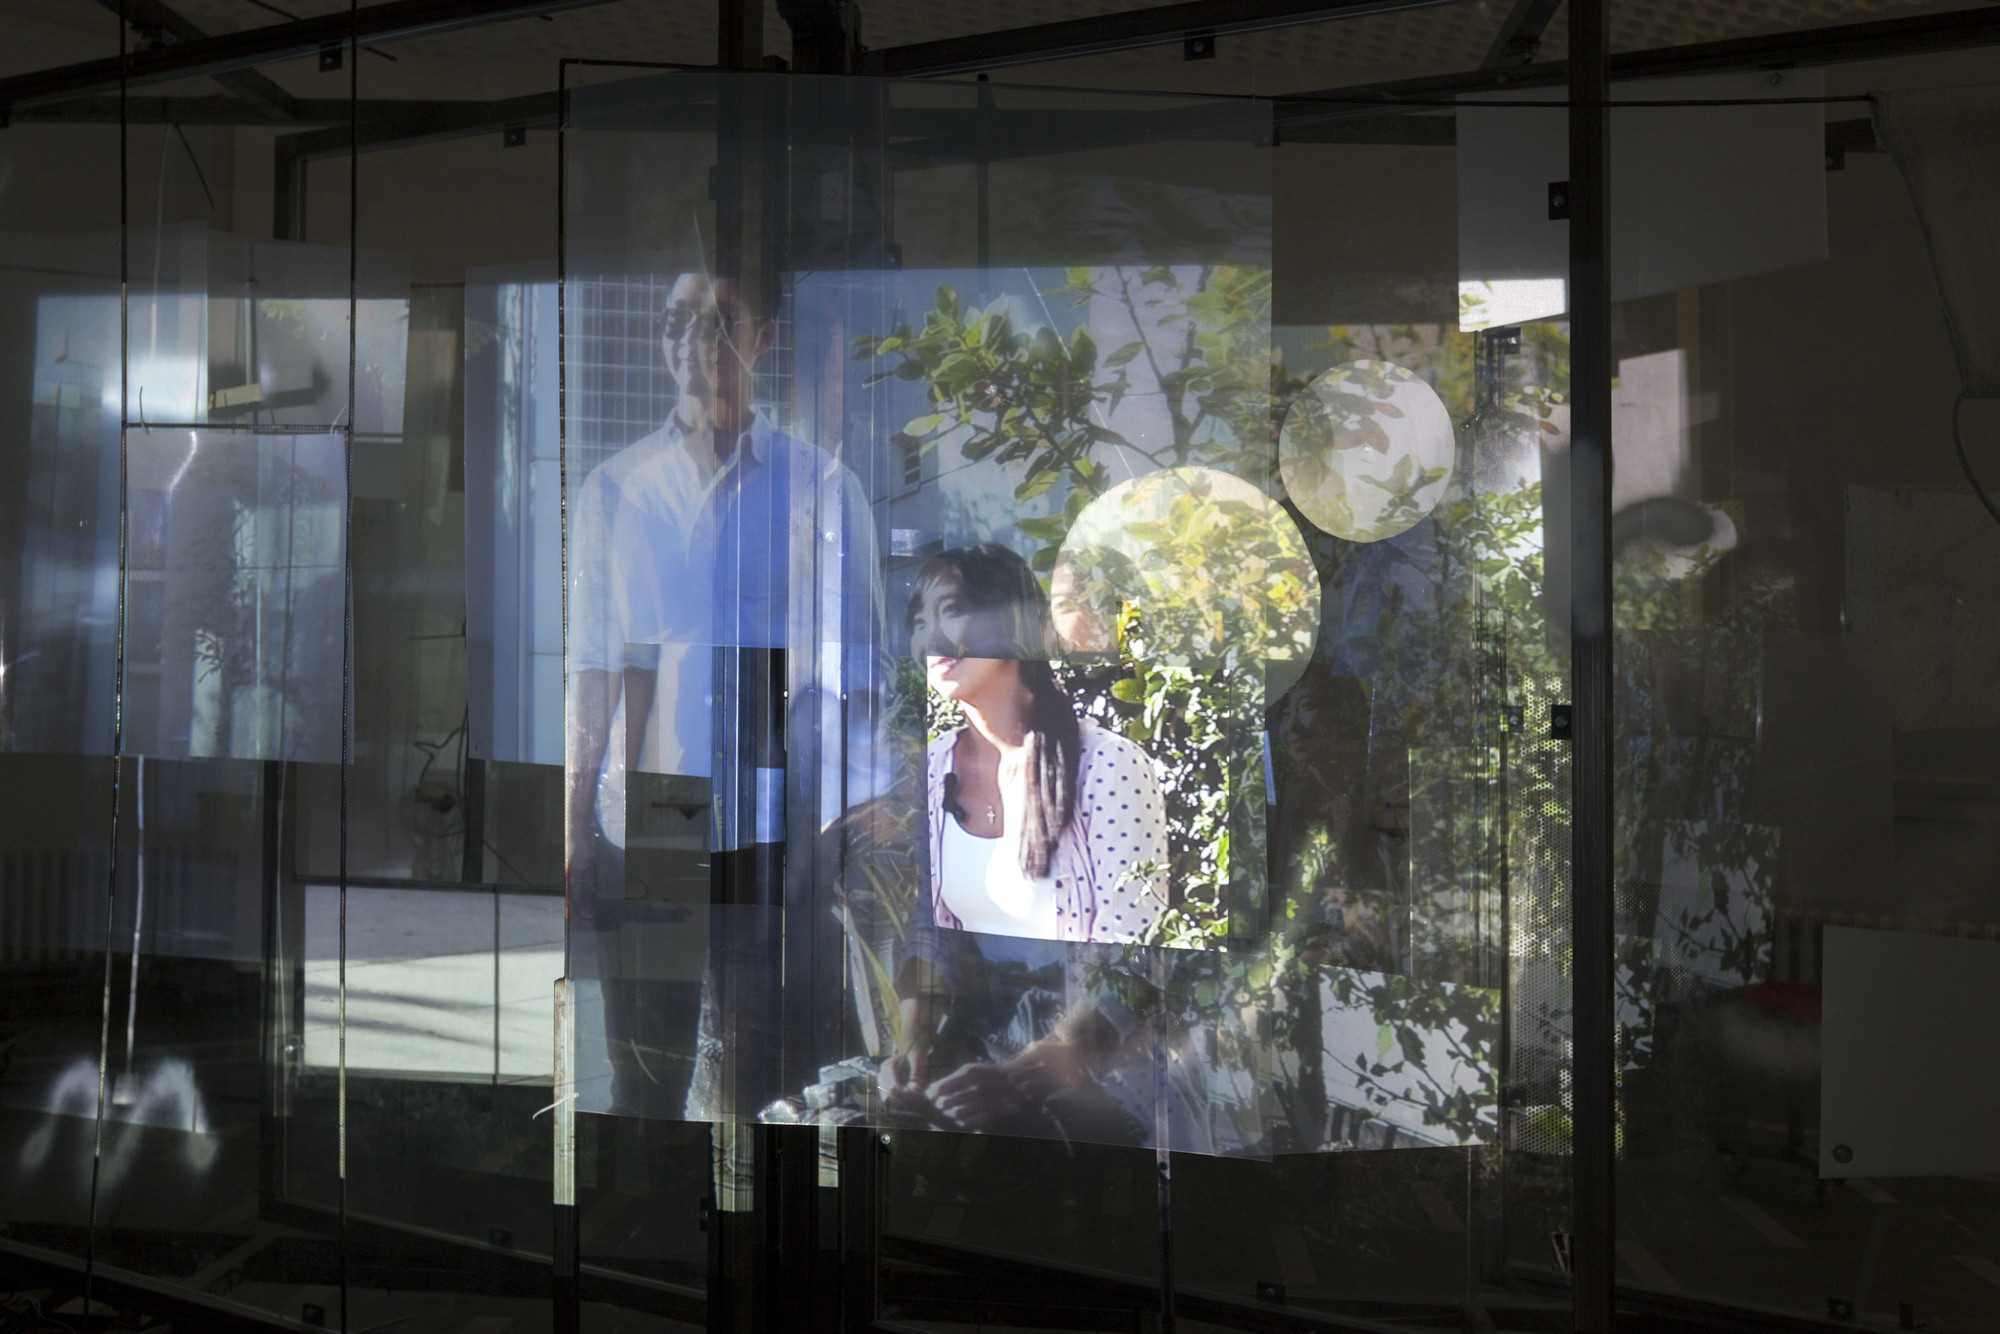 Neïl Beloufa. Superlatives and Resolution, People's Passion, Movement and Life. 2014. Video (color, sound, 10:59 min), plexiglass, steel construction, digitally controlled motor, computer prints on paper, tape, plastic sheets, MDF, and clay, dimensions variable. Installation view, Hopes for the Best, Schinkel Pavilion, Berlin, April 4–May 31, 2015. Collection of K11Art Foundation, Hong Kong. Courtesy the artist; François Ghebaly Gallery, Los Angeles; Mendes Wood DM, São Paulo; and ZERO…, Milan. Photo: Andreas Rossetti